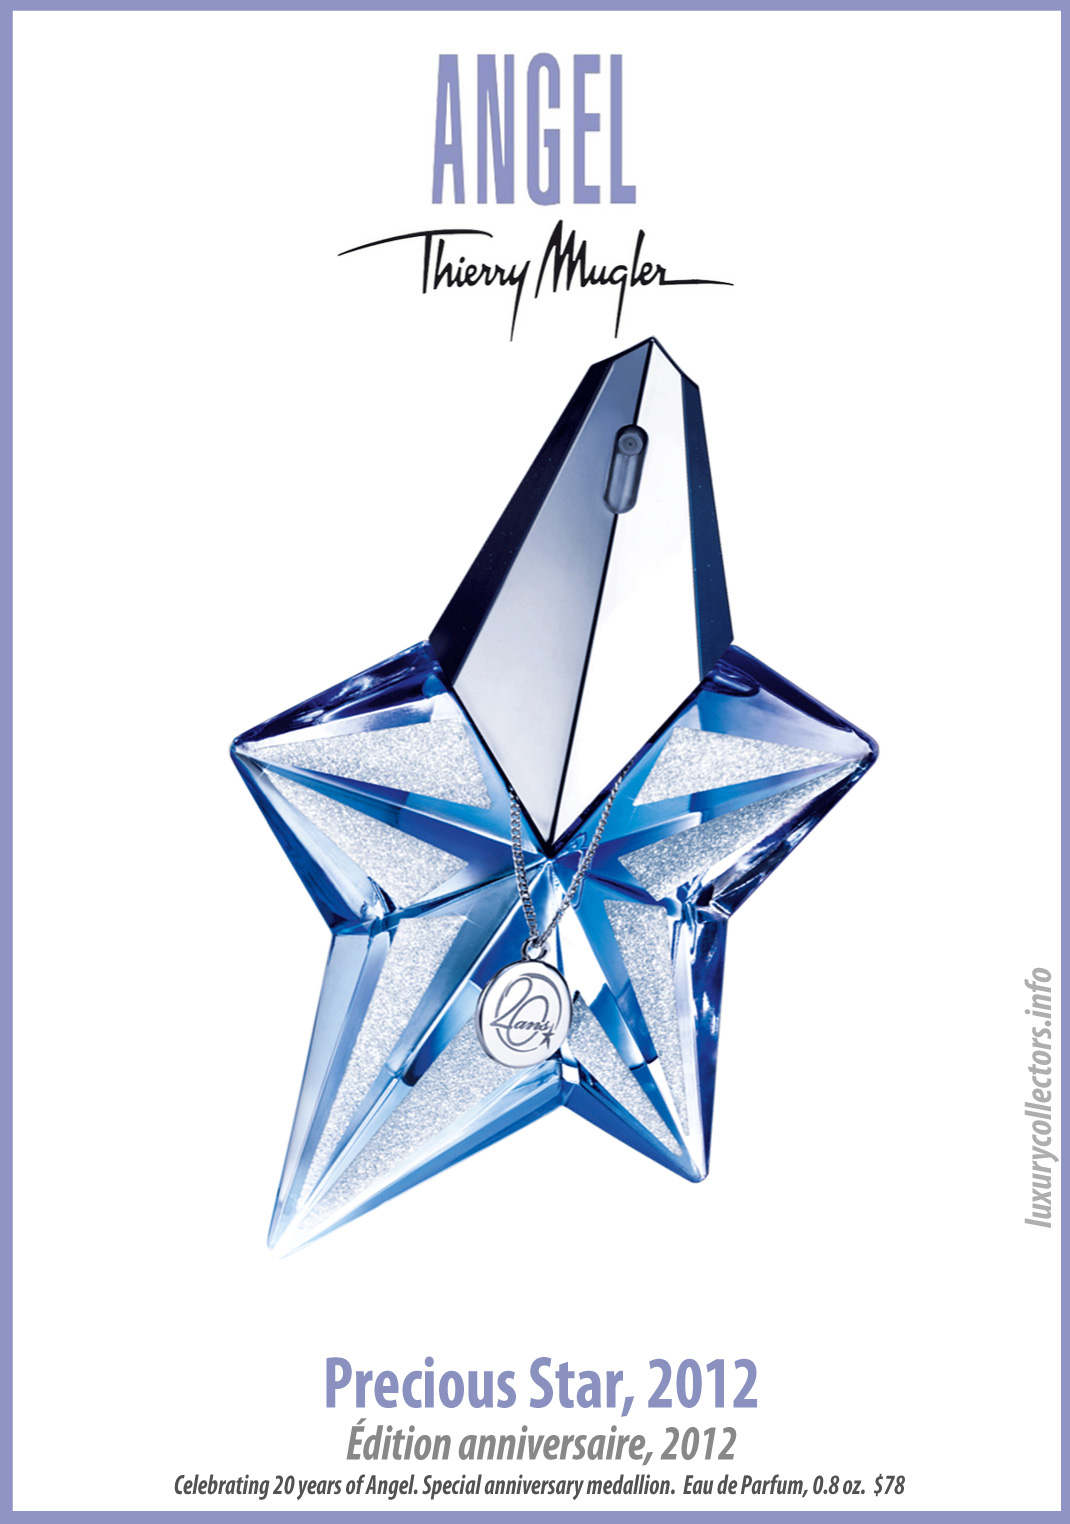 Thierry Mugler Angel Perfume Collector's Limited Edition Bottle 2012 Presious Star